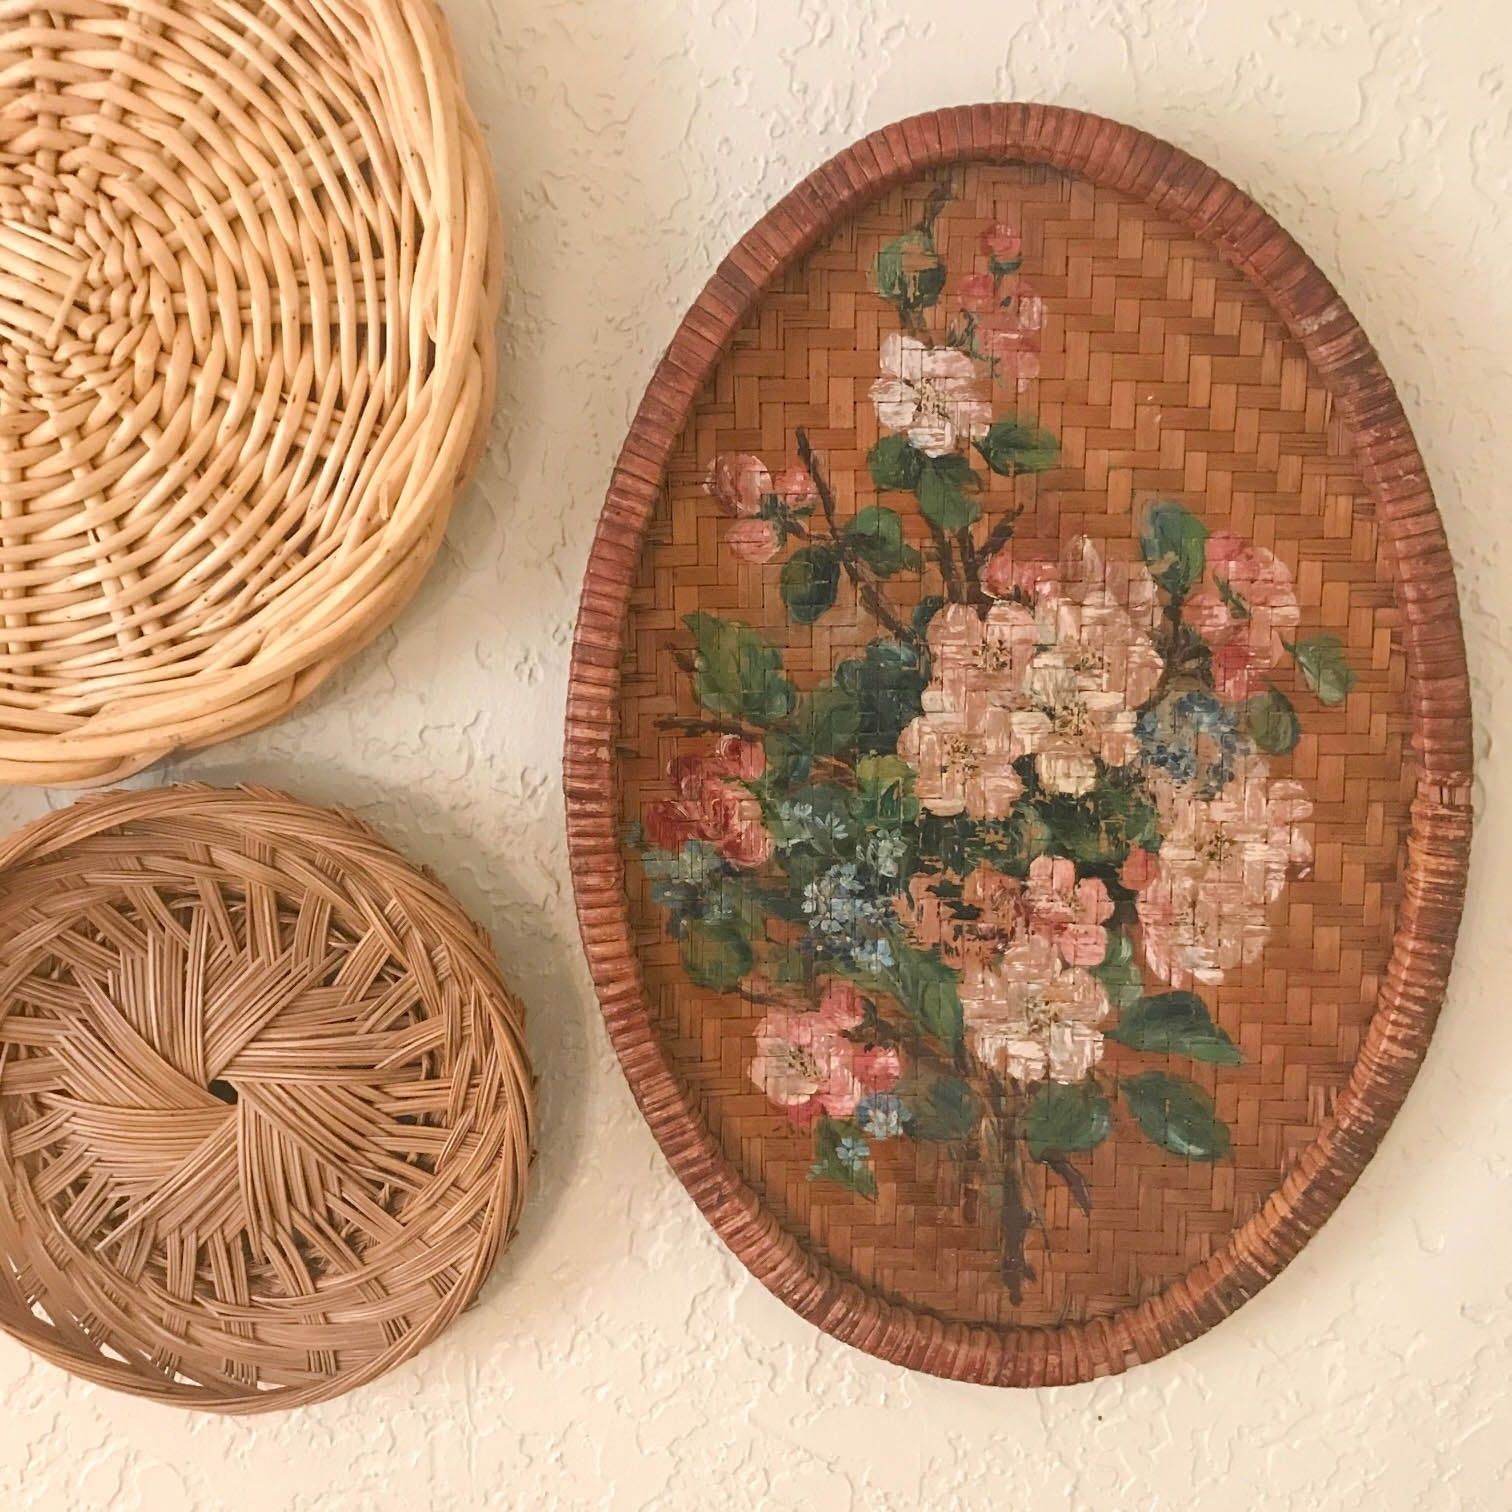 Best And Newest Vintage Wicker Wall Art, Basket Wall Decor, Painted Wicker Wall For Woven Basket Wall Art (View 3 of 15)